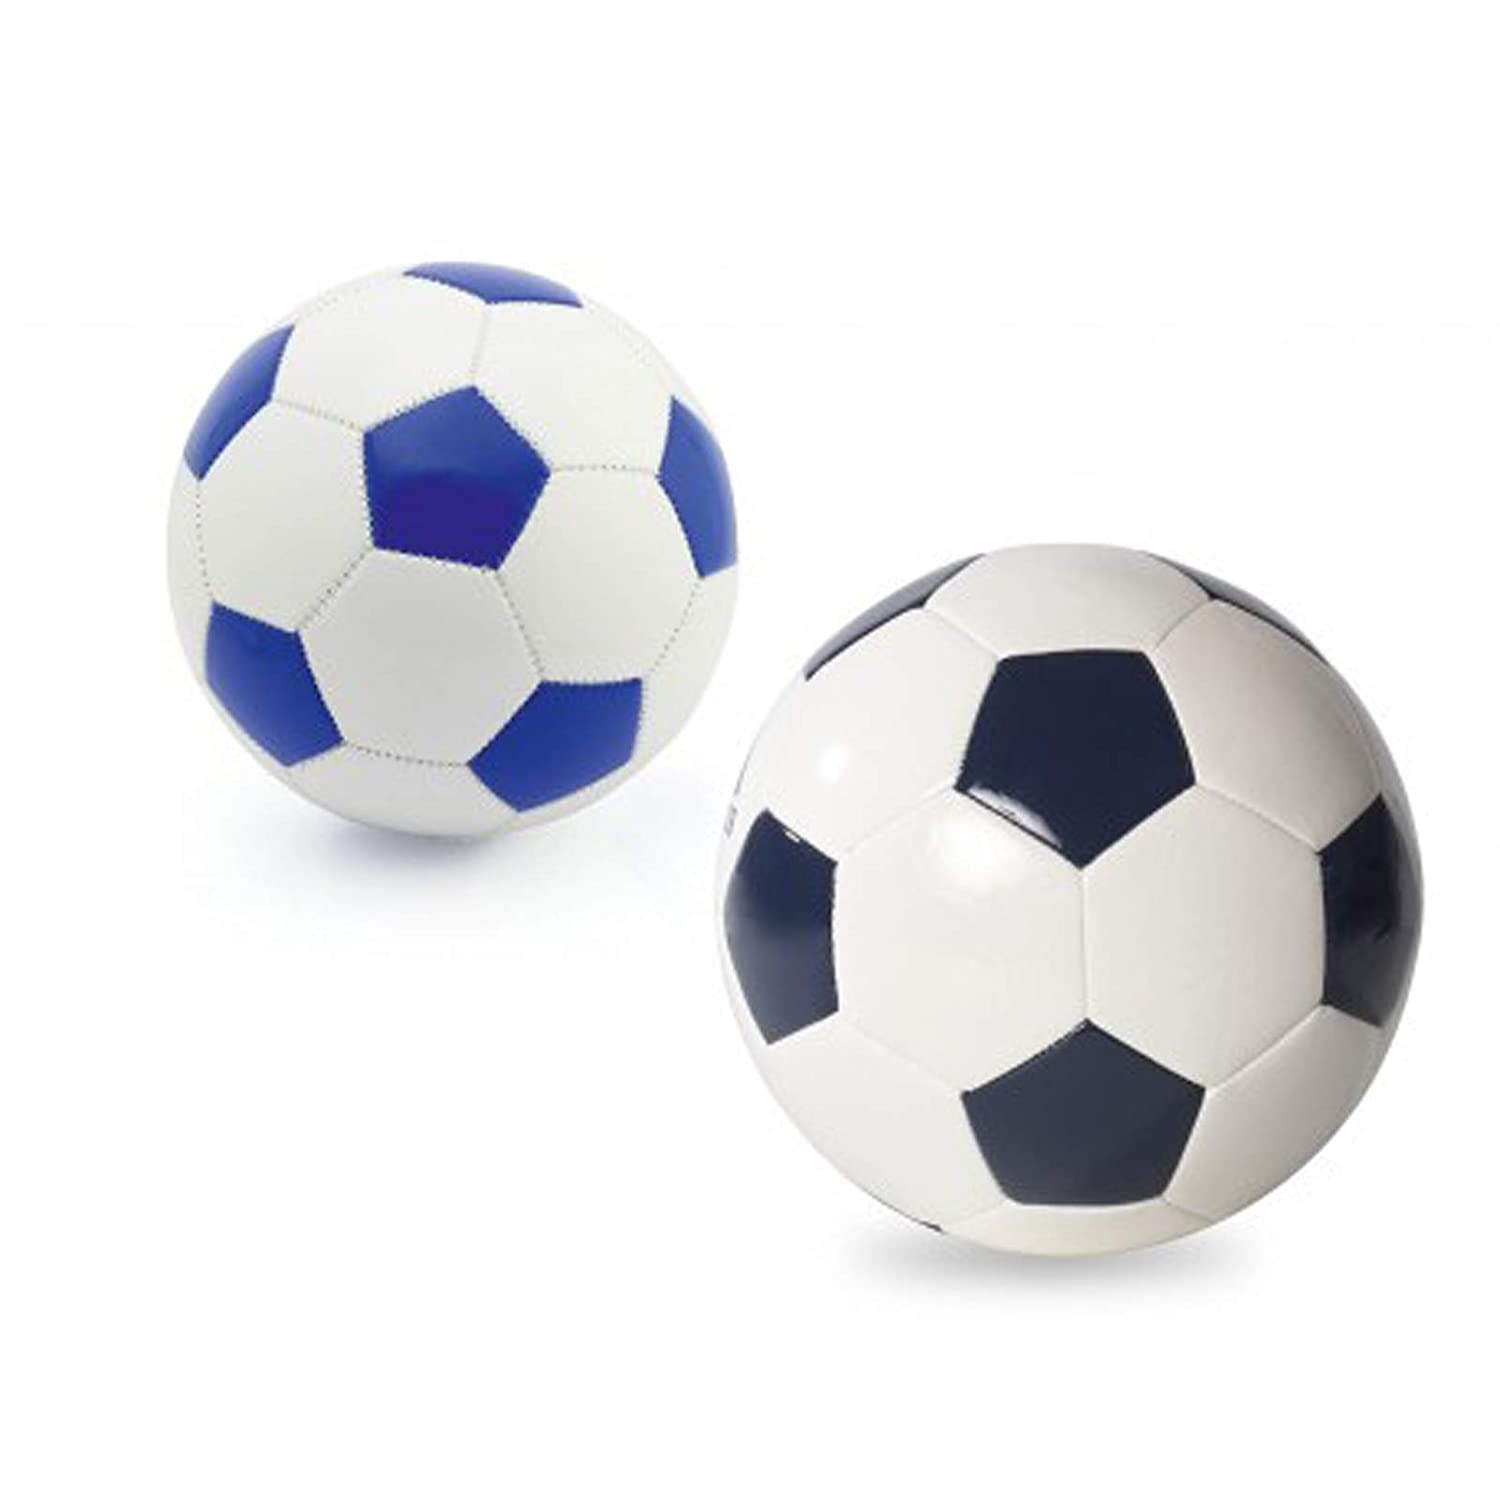 BETTASHOP.ES BALONES DE Futbol Balon DE Futbol Clasico: Amazon.es ...